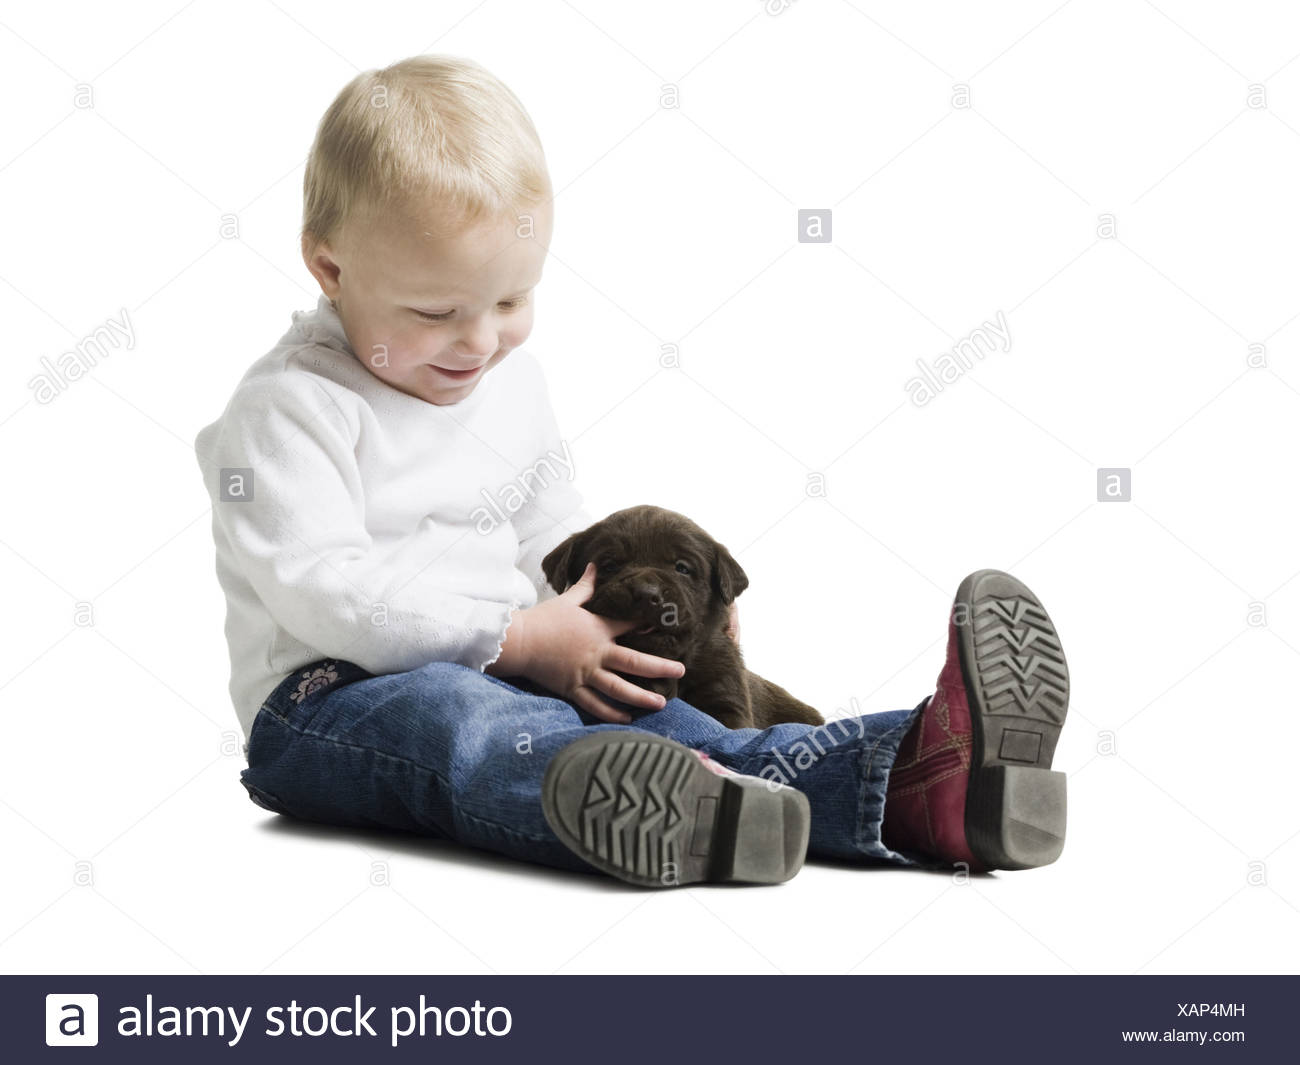 child with puppy - Stock Image